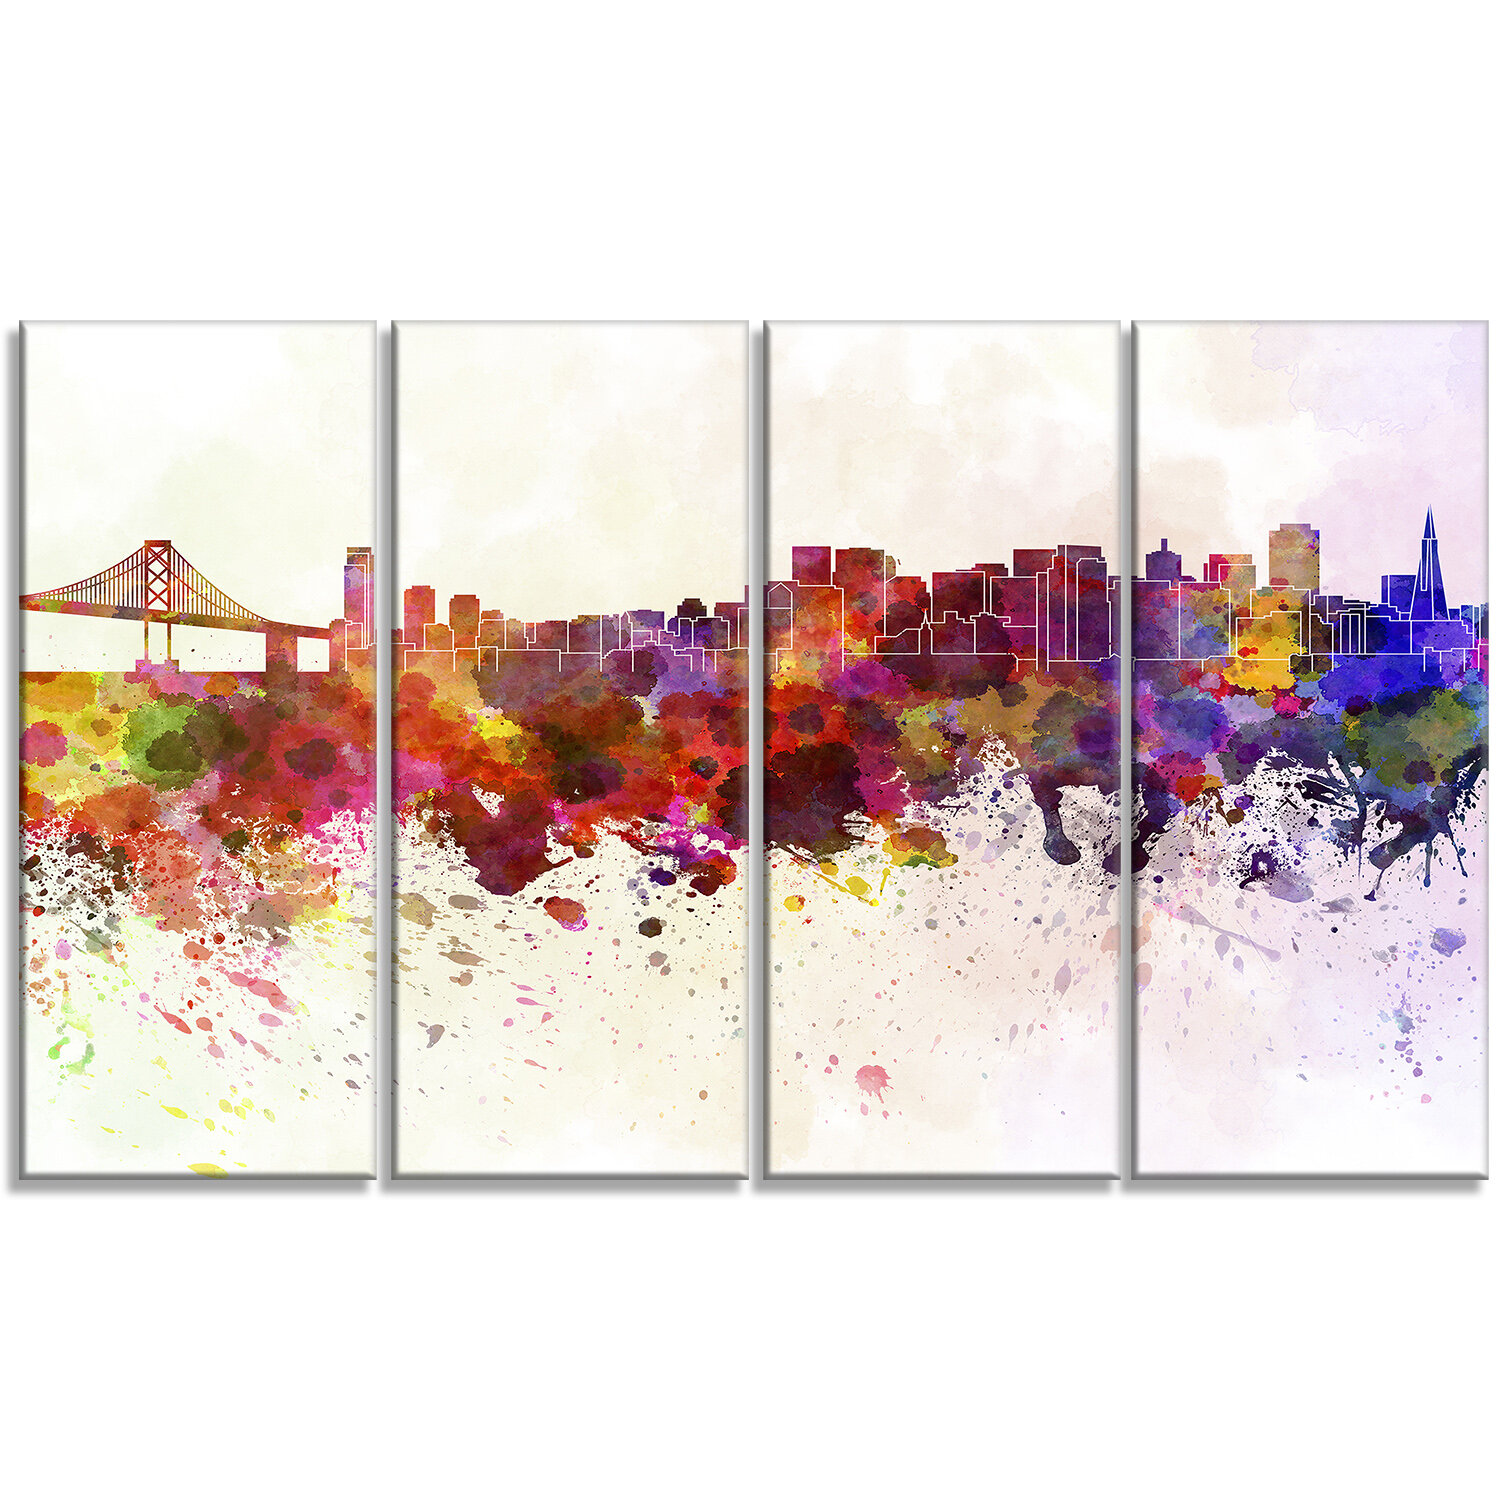 Designart San Francisco Skyline Cityscape 4 Piece Painting Print On Wrapped Canvas Set Wayfair